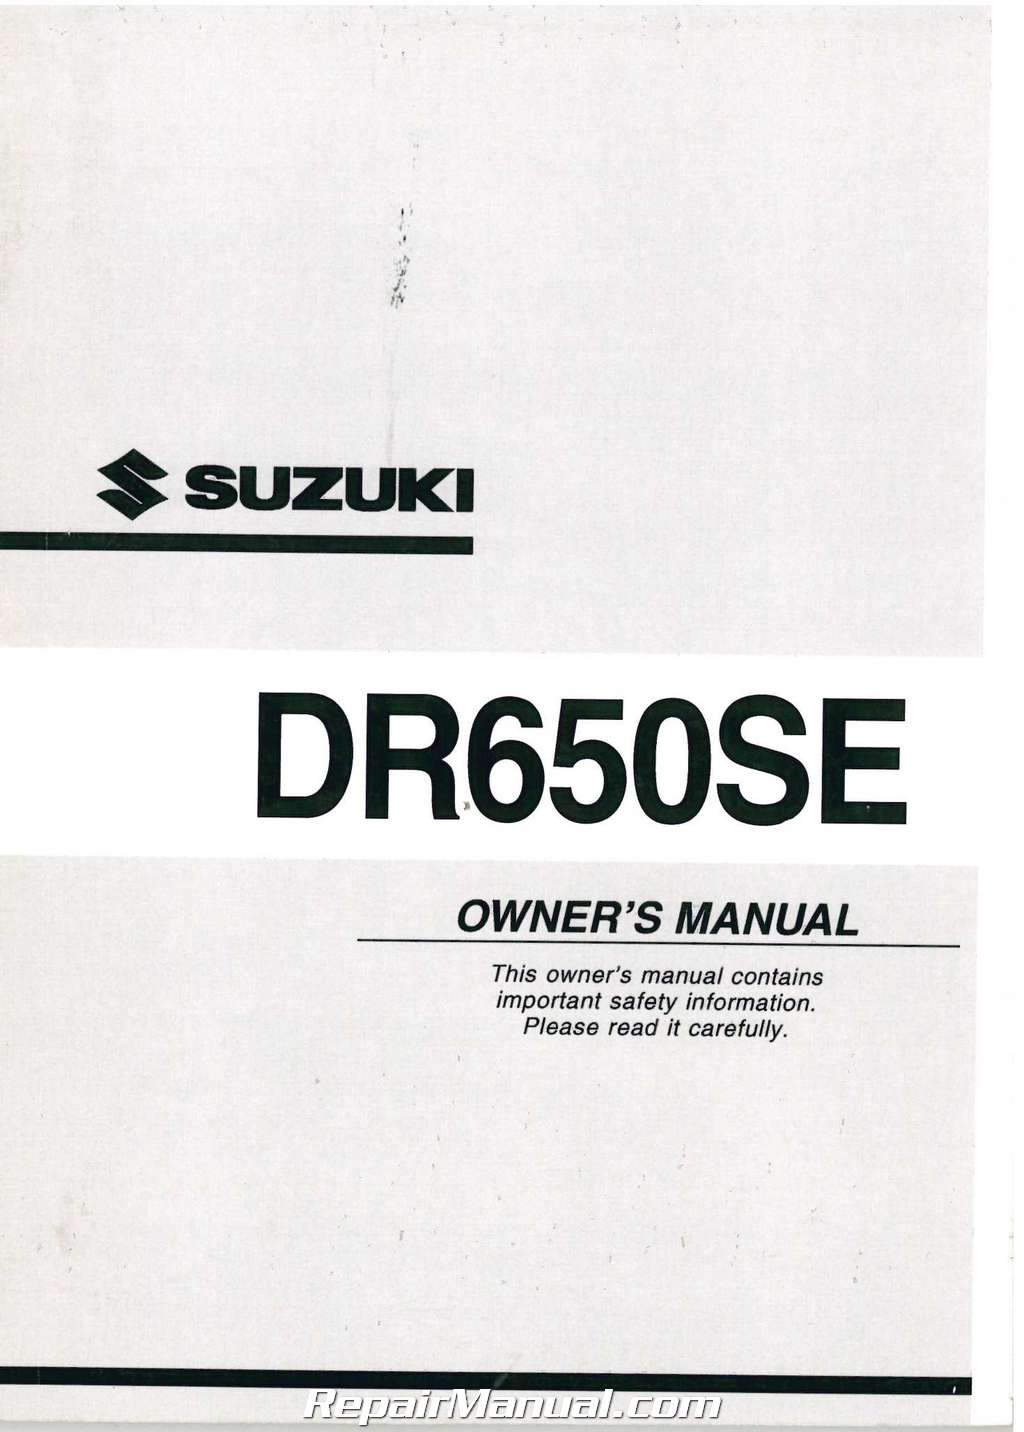 2003 Suzuki DR650SEK3 Motorcycle Owners Manual